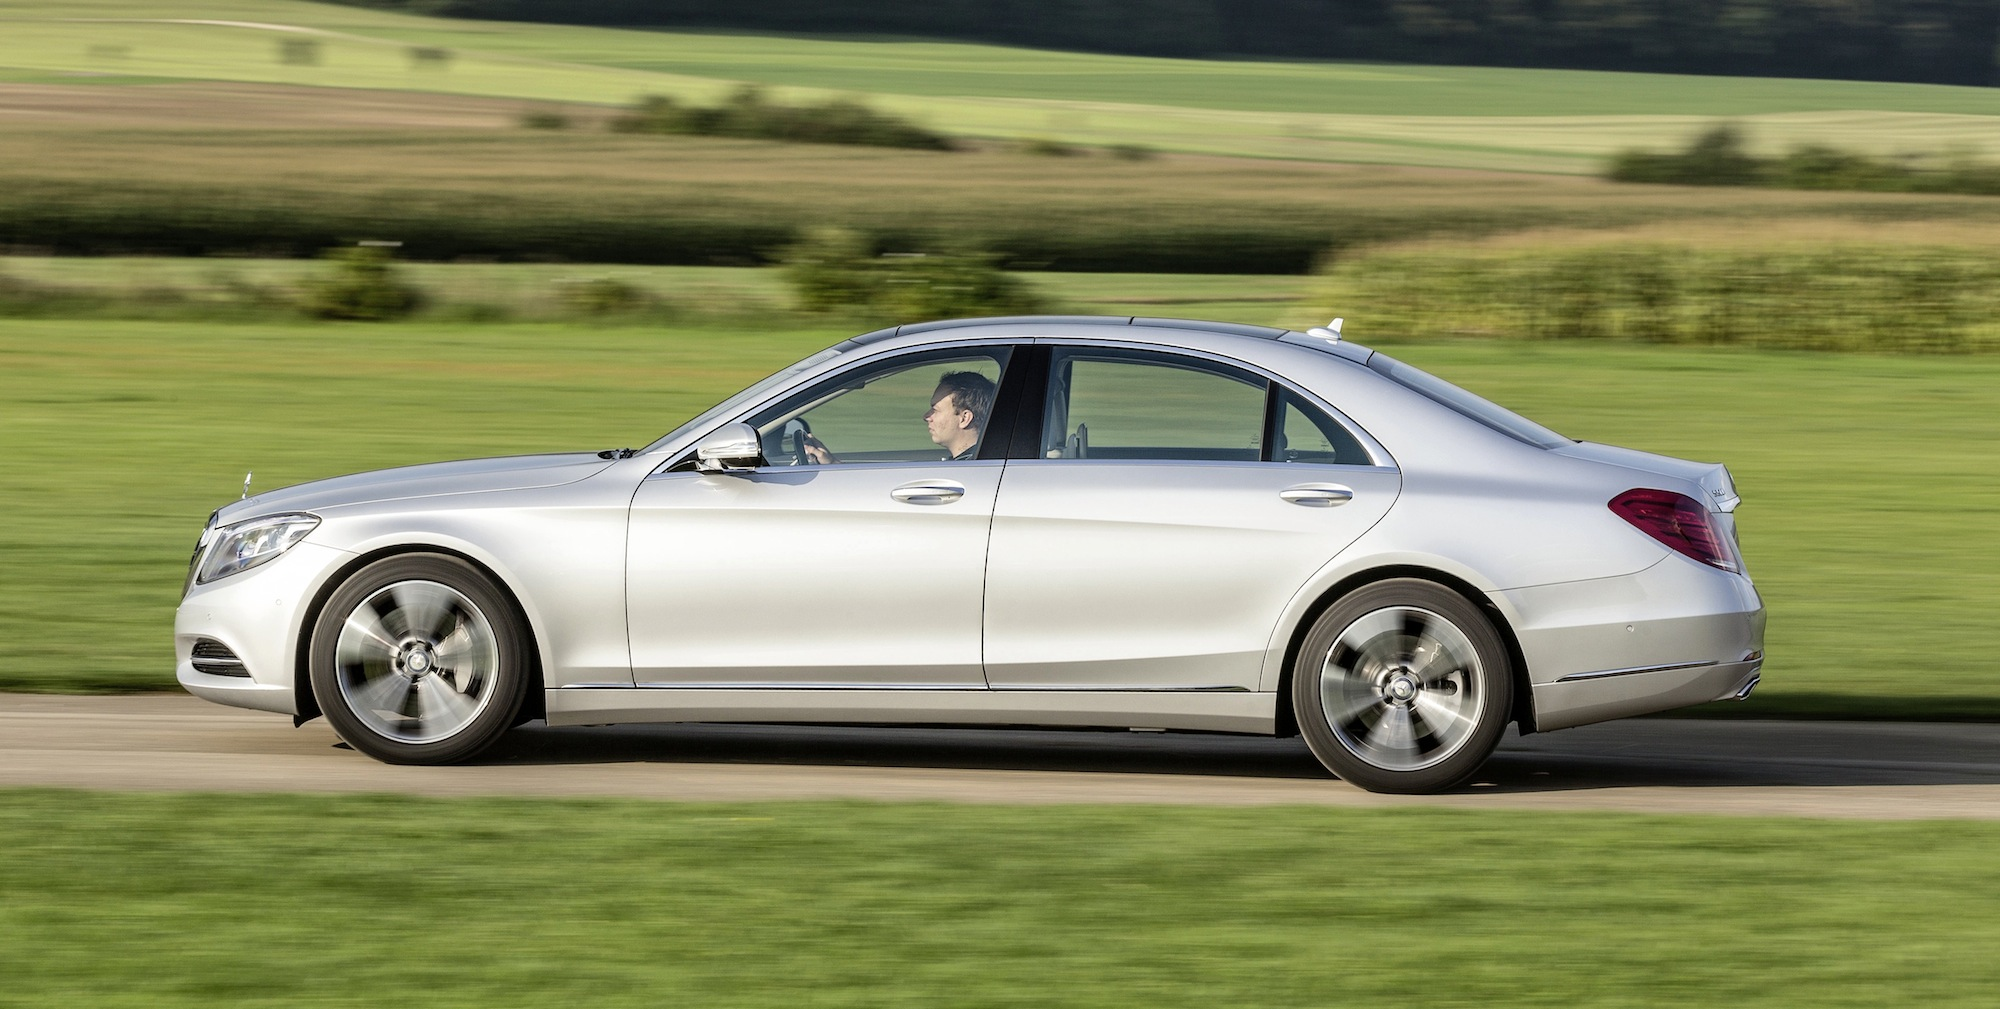 Plug In Hybrid Cars >> 2015 Mercedes-Benz S-Class Plug-In Hybrid Review - photos | CarAdvice